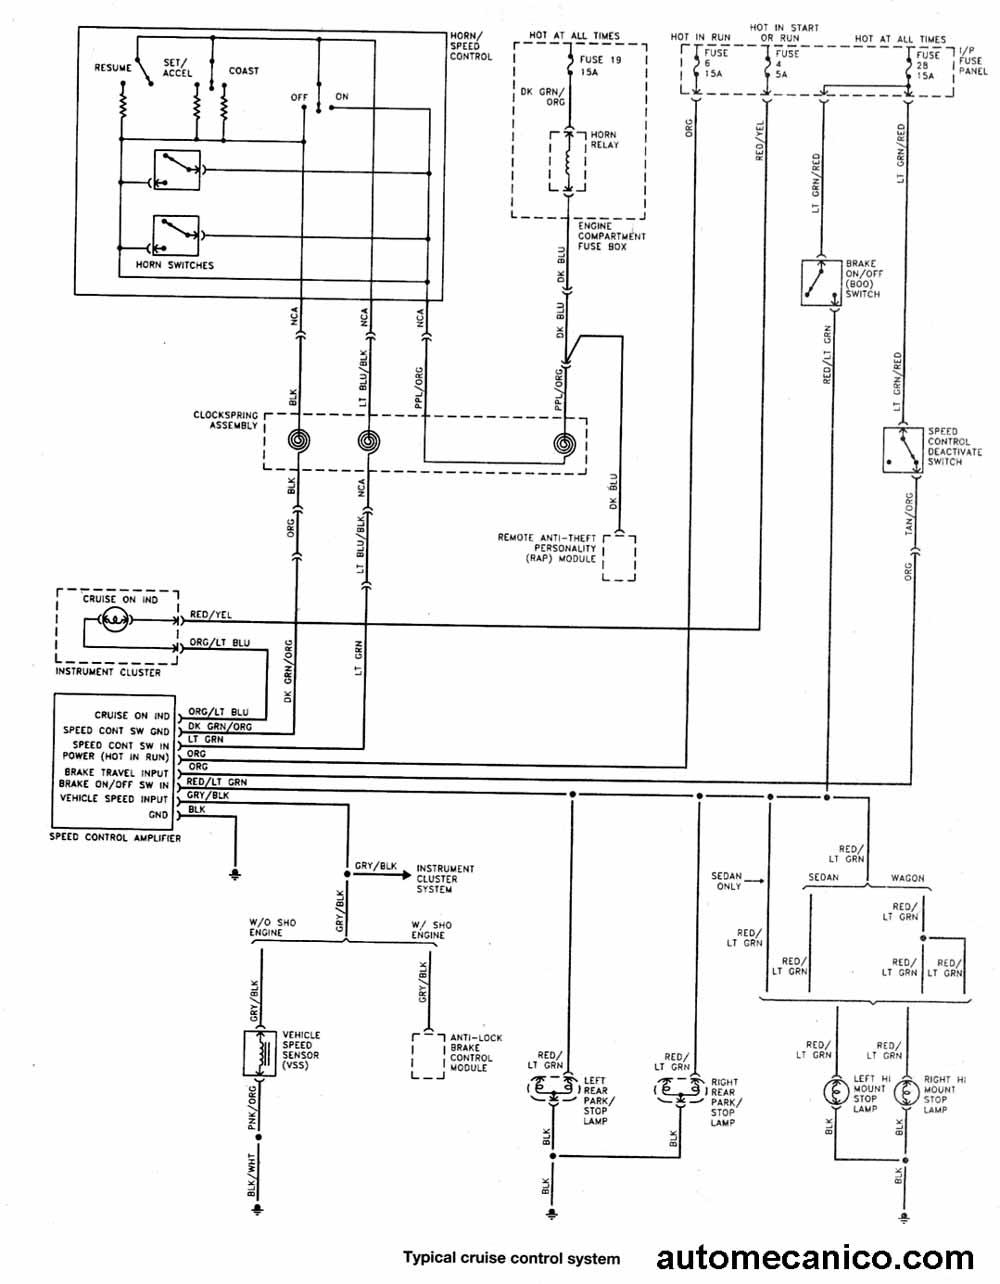 Diagrama electrico ford galaxy 94